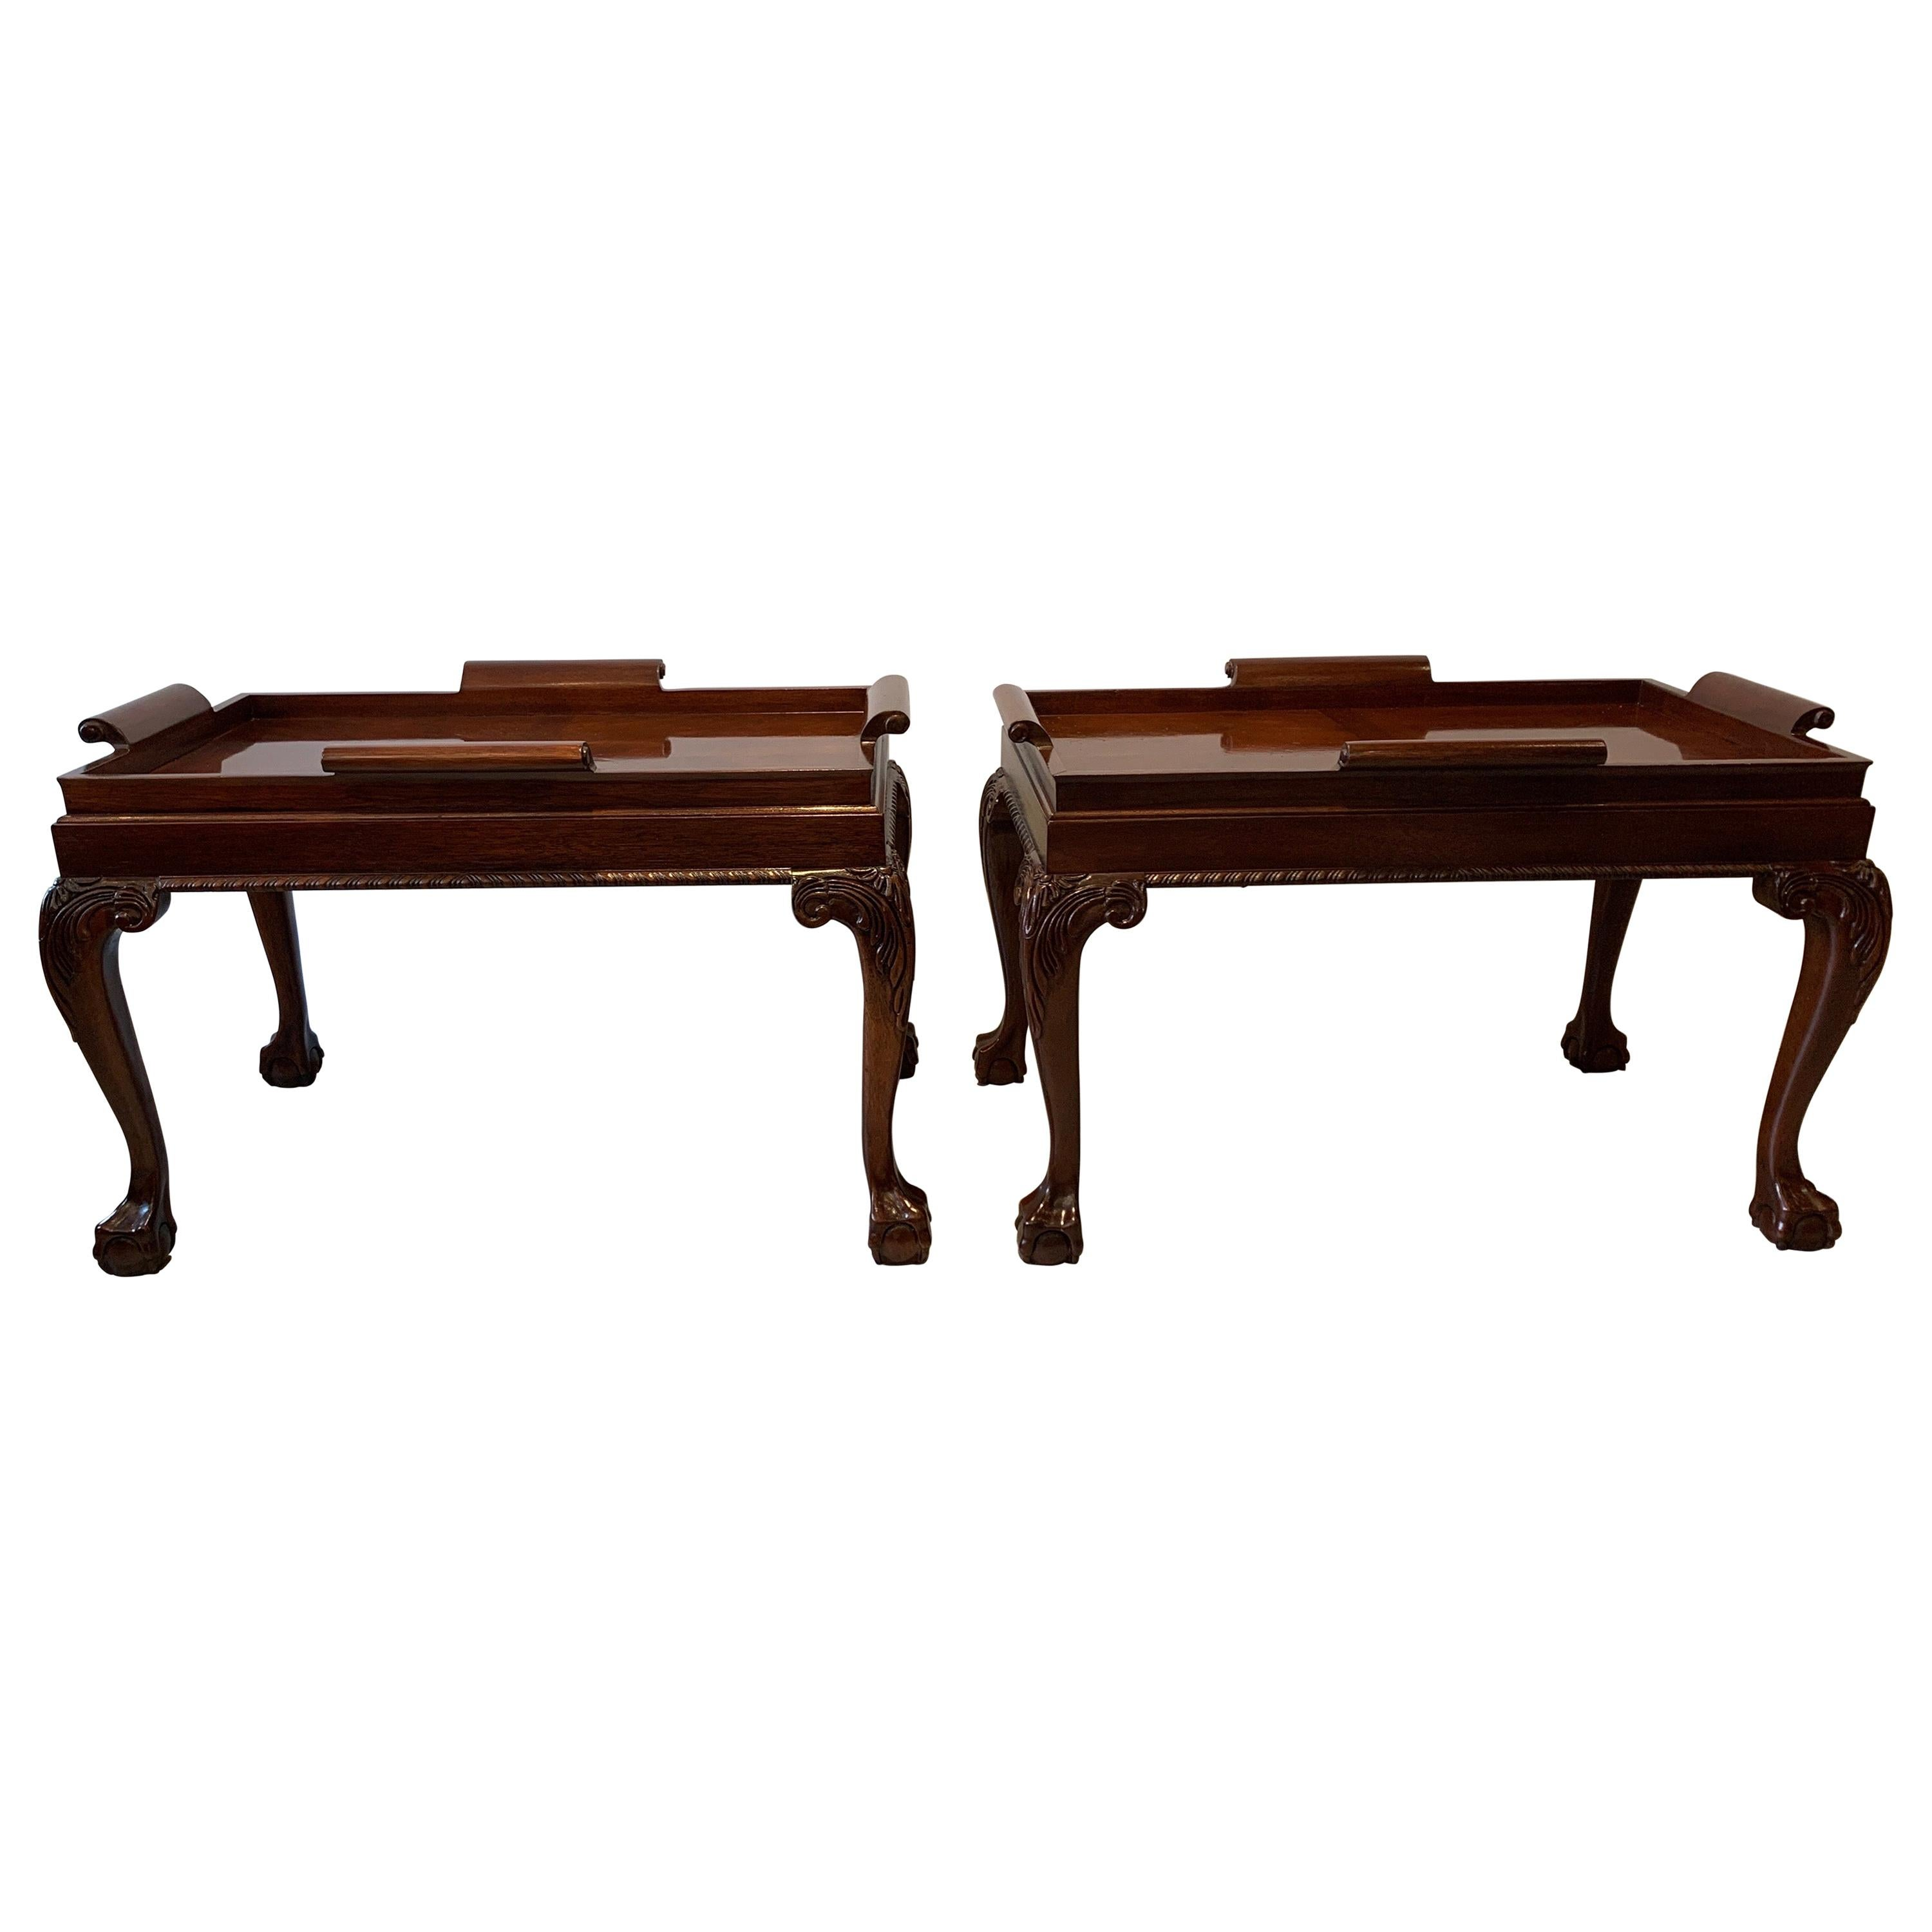 Pair of Mahogany Chippendale Style Diminutive Coffee Tables